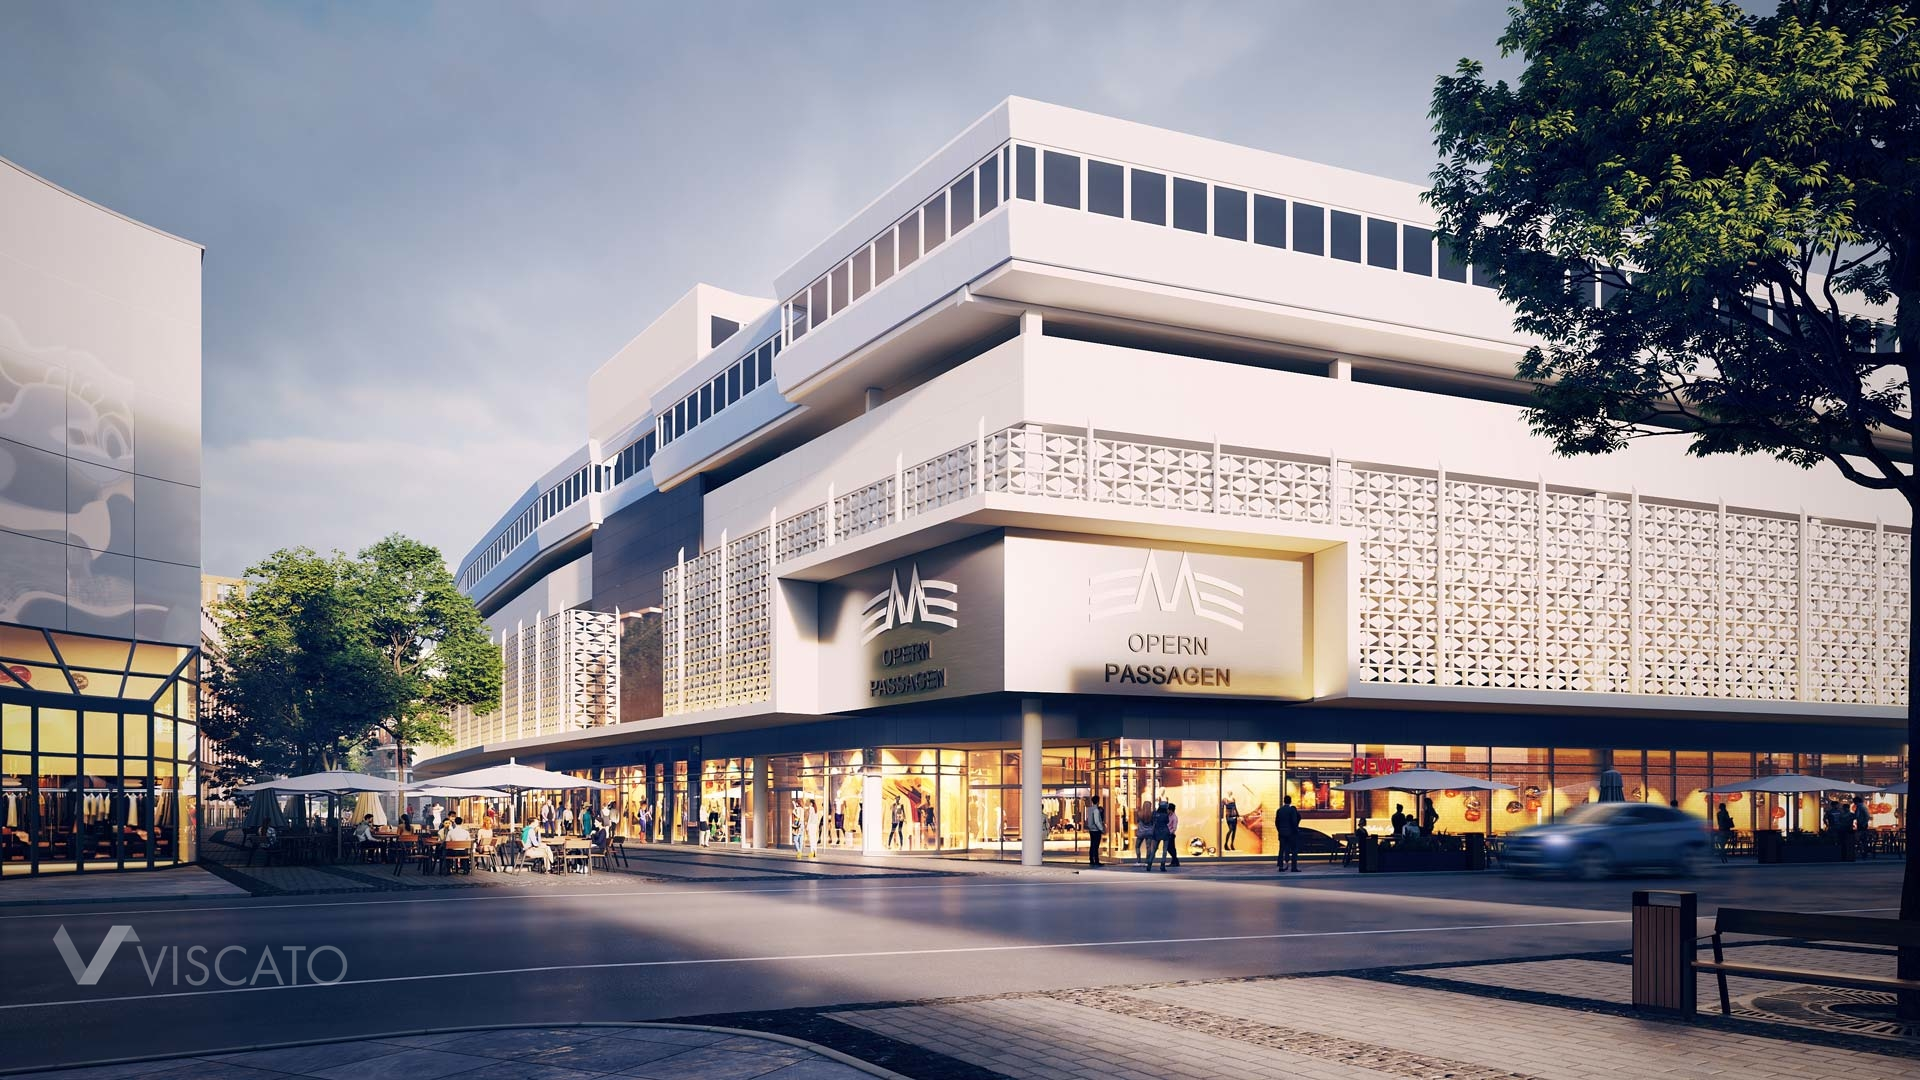 3D mall with white facade, Viscato